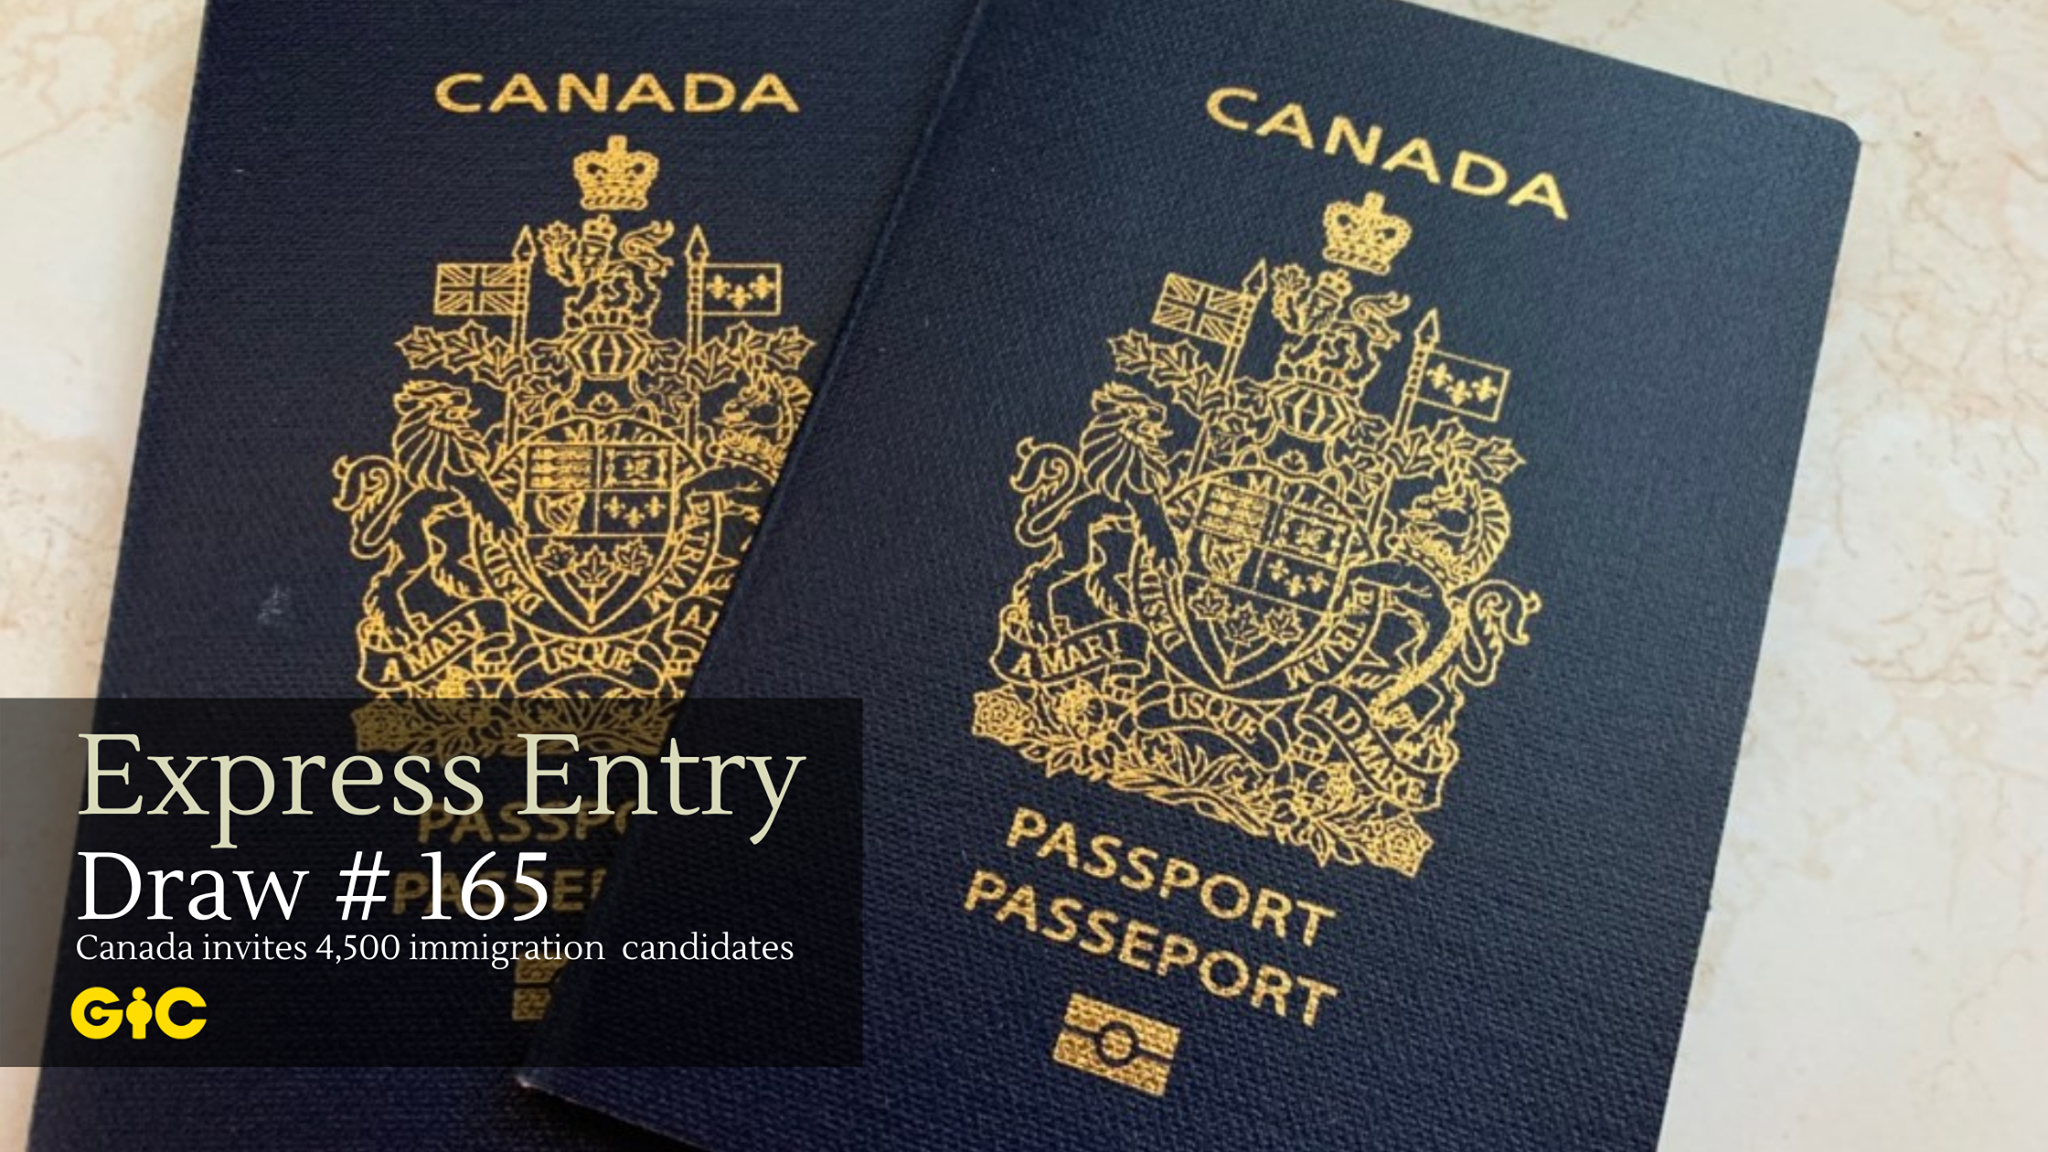 Express Entry Canada invites 4,500 to apply for permanent residence